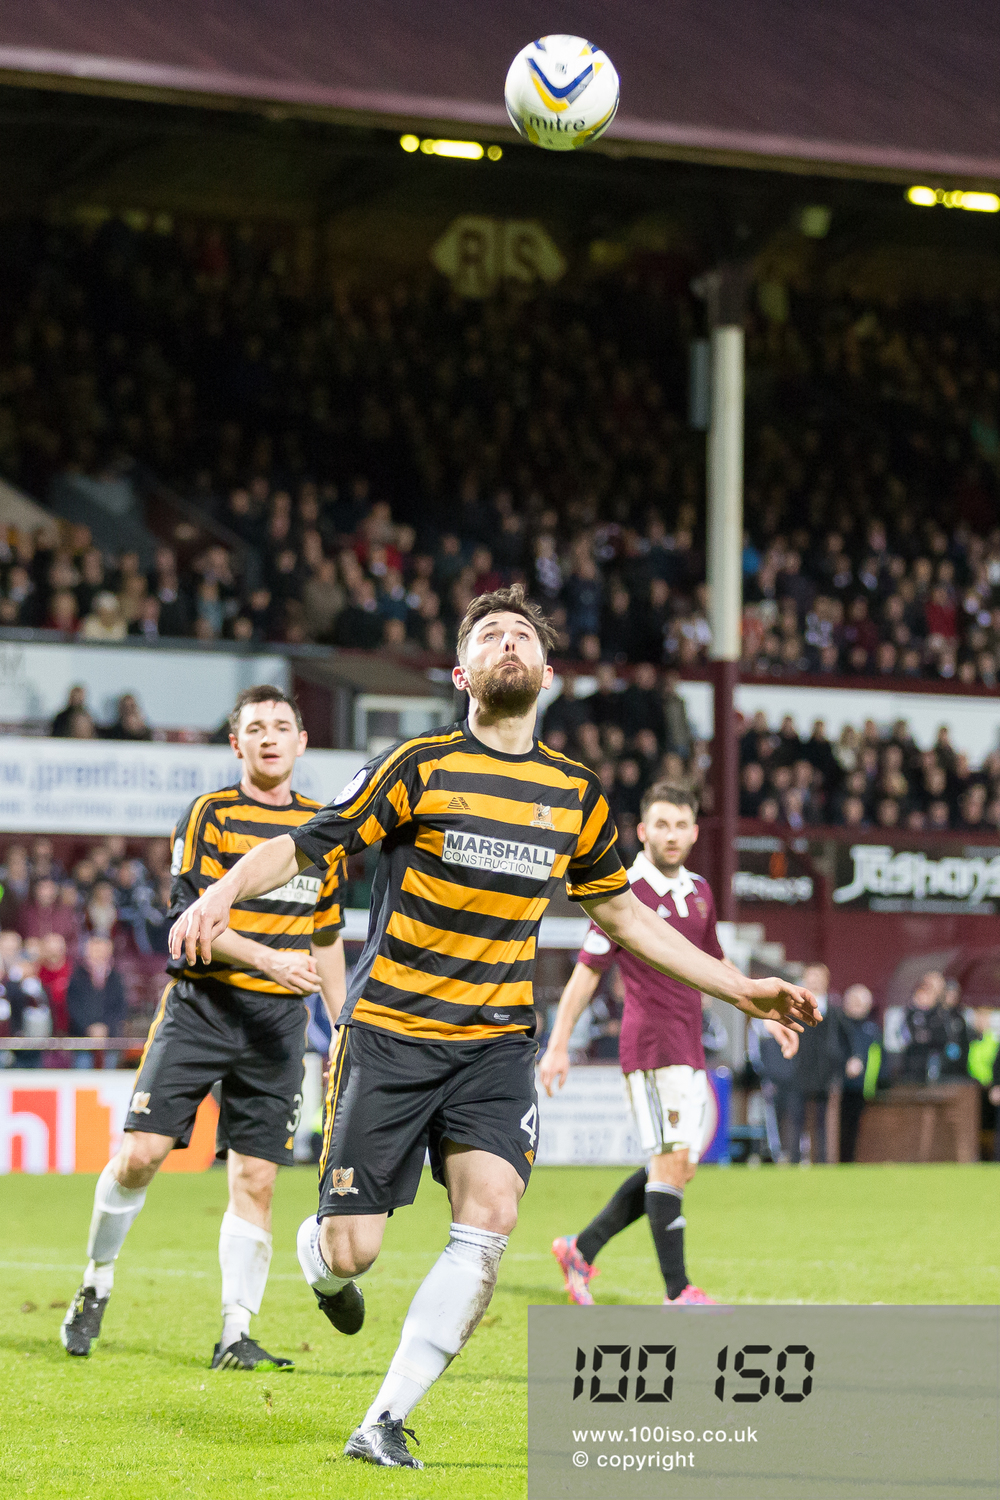 Hearts-v-Alloa-32.jpg